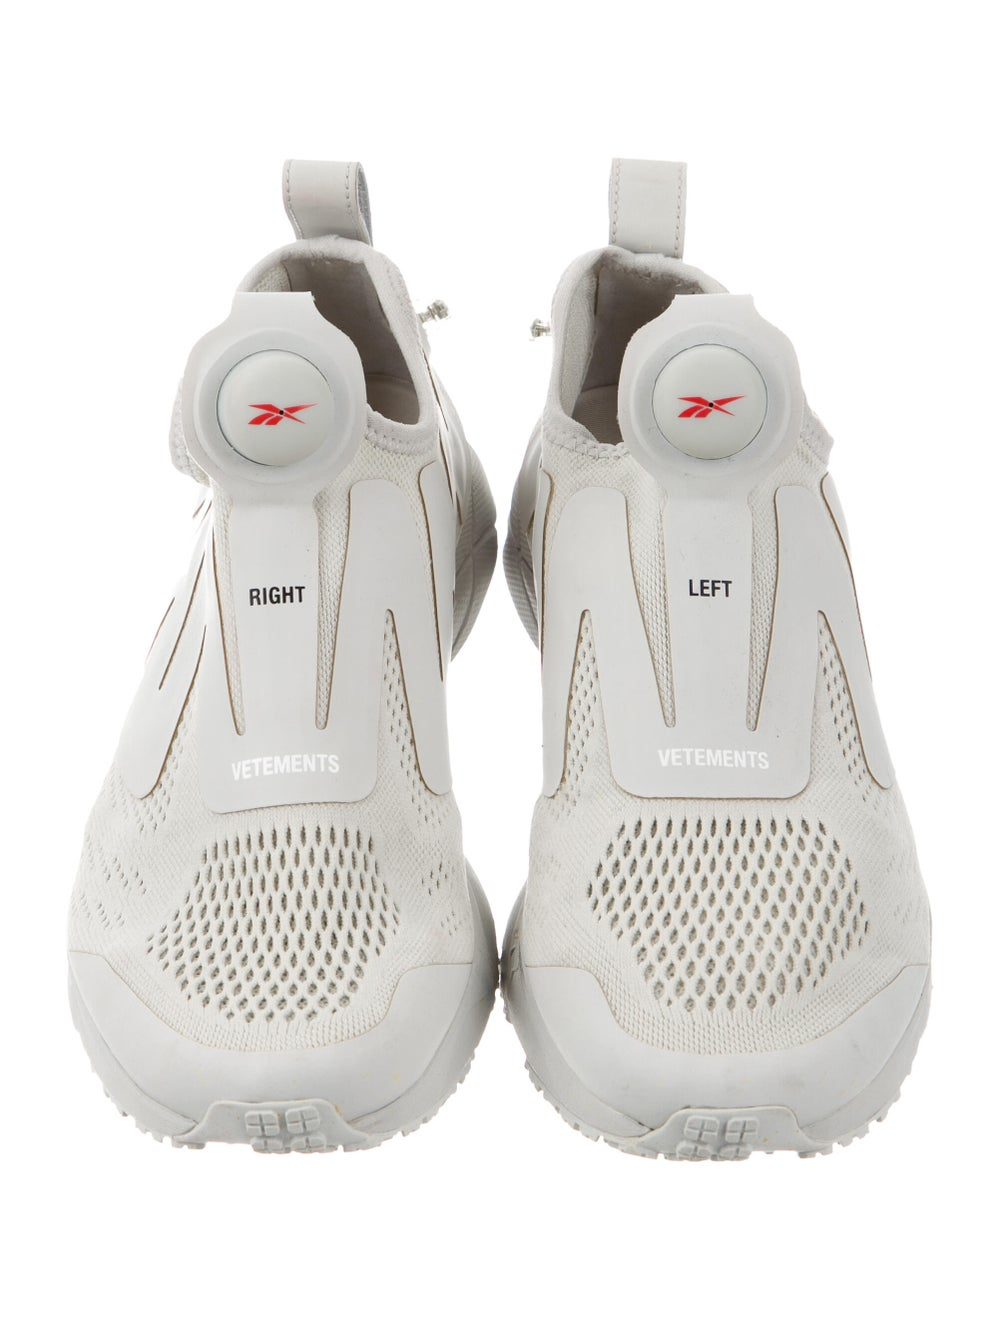 Vetements x Reebok Pump Supreme Sneakers Grey - image 3